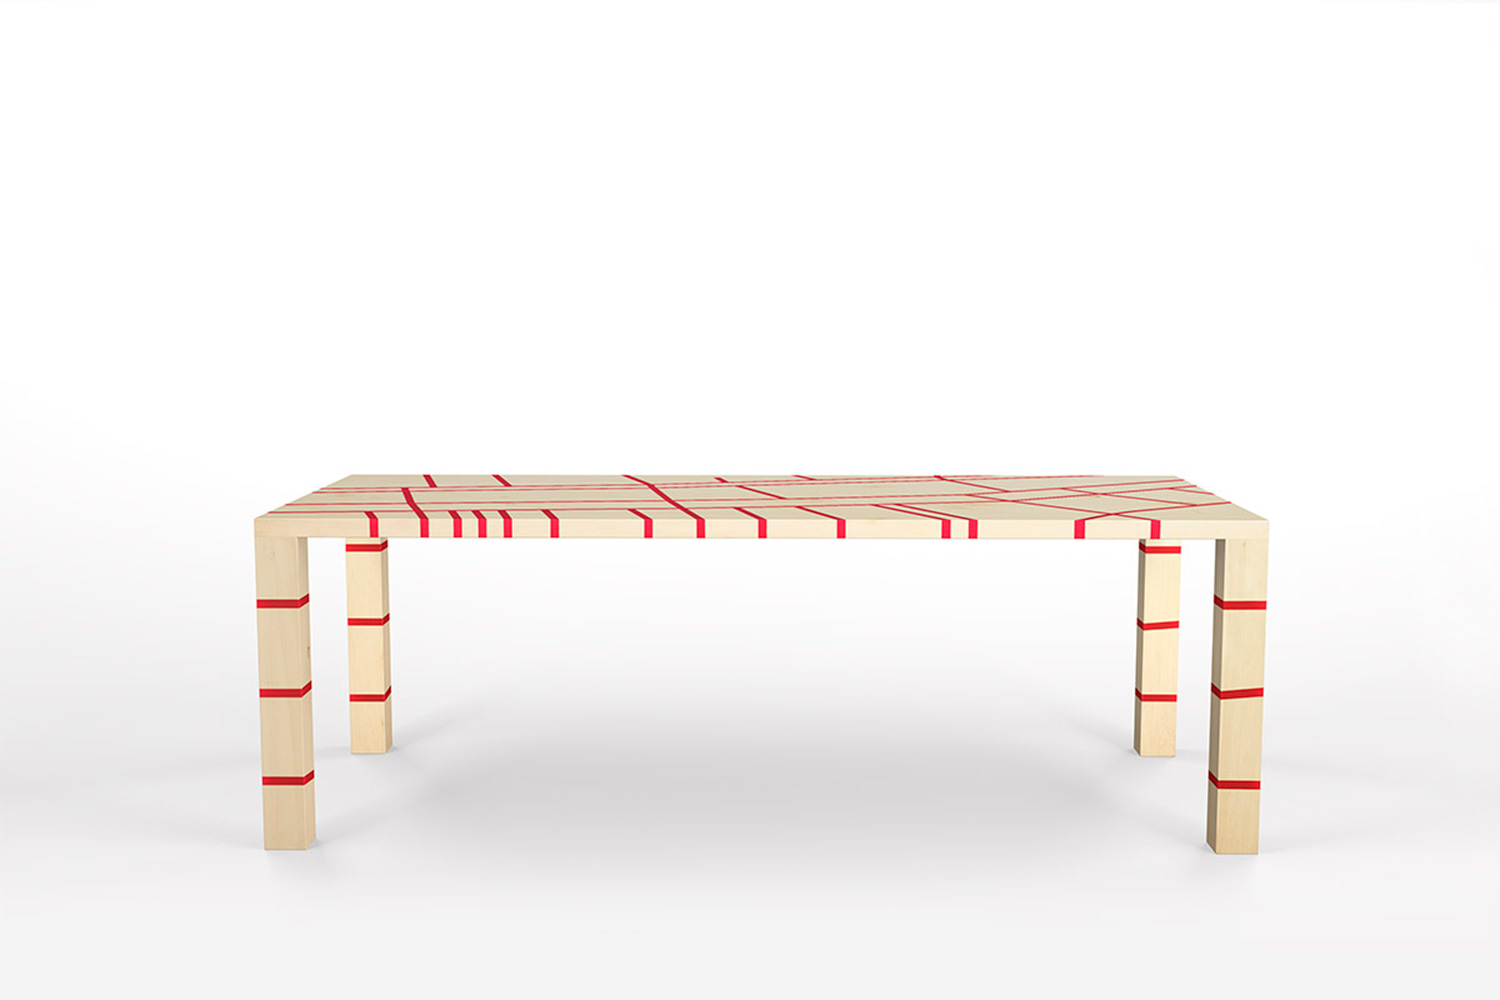 bioresin design table Amsterdam Hanno groen boothman